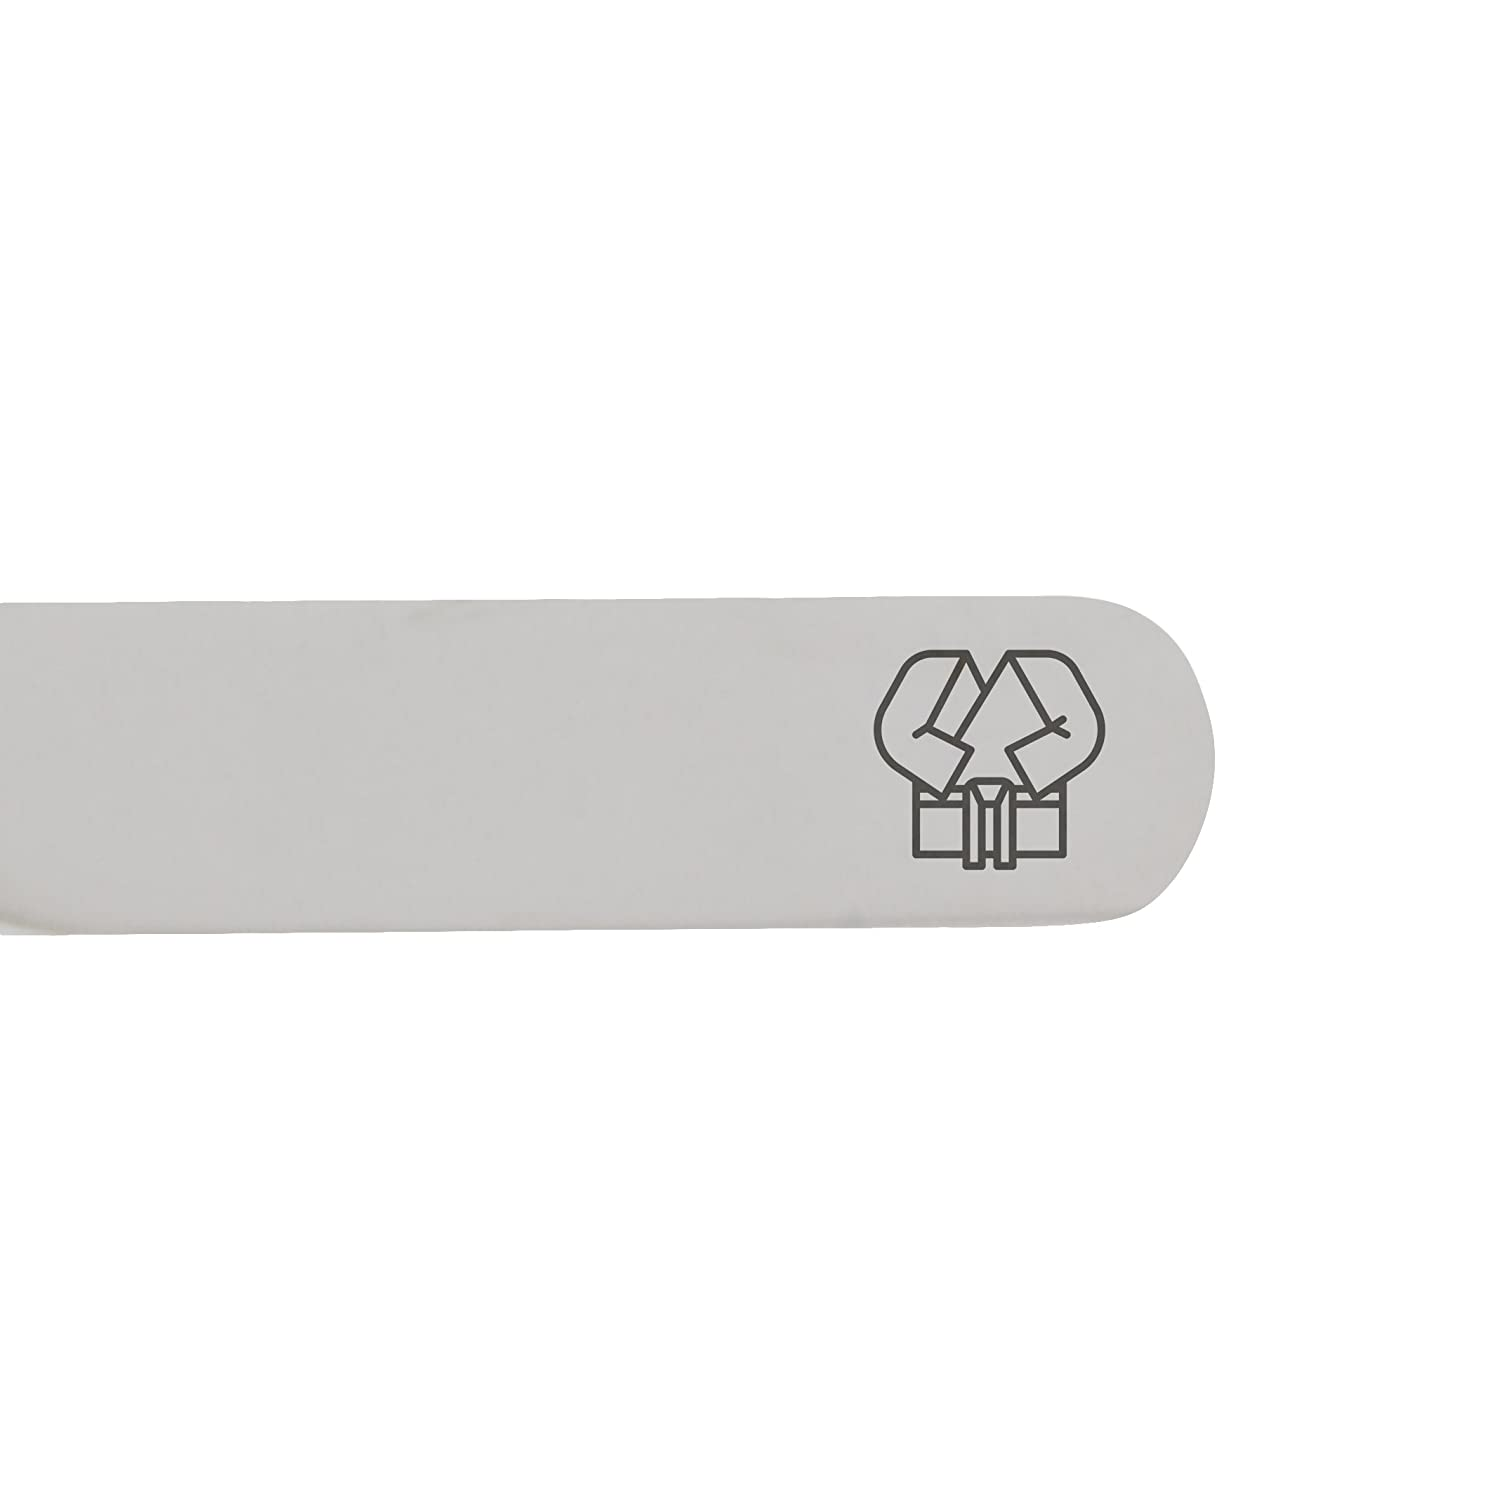 MODERN GOODS SHOP Stainless Steel Collar Stays With Laser Engraved Front Door Design 2.5 Inch Metal Collar Stiffeners Made In USA